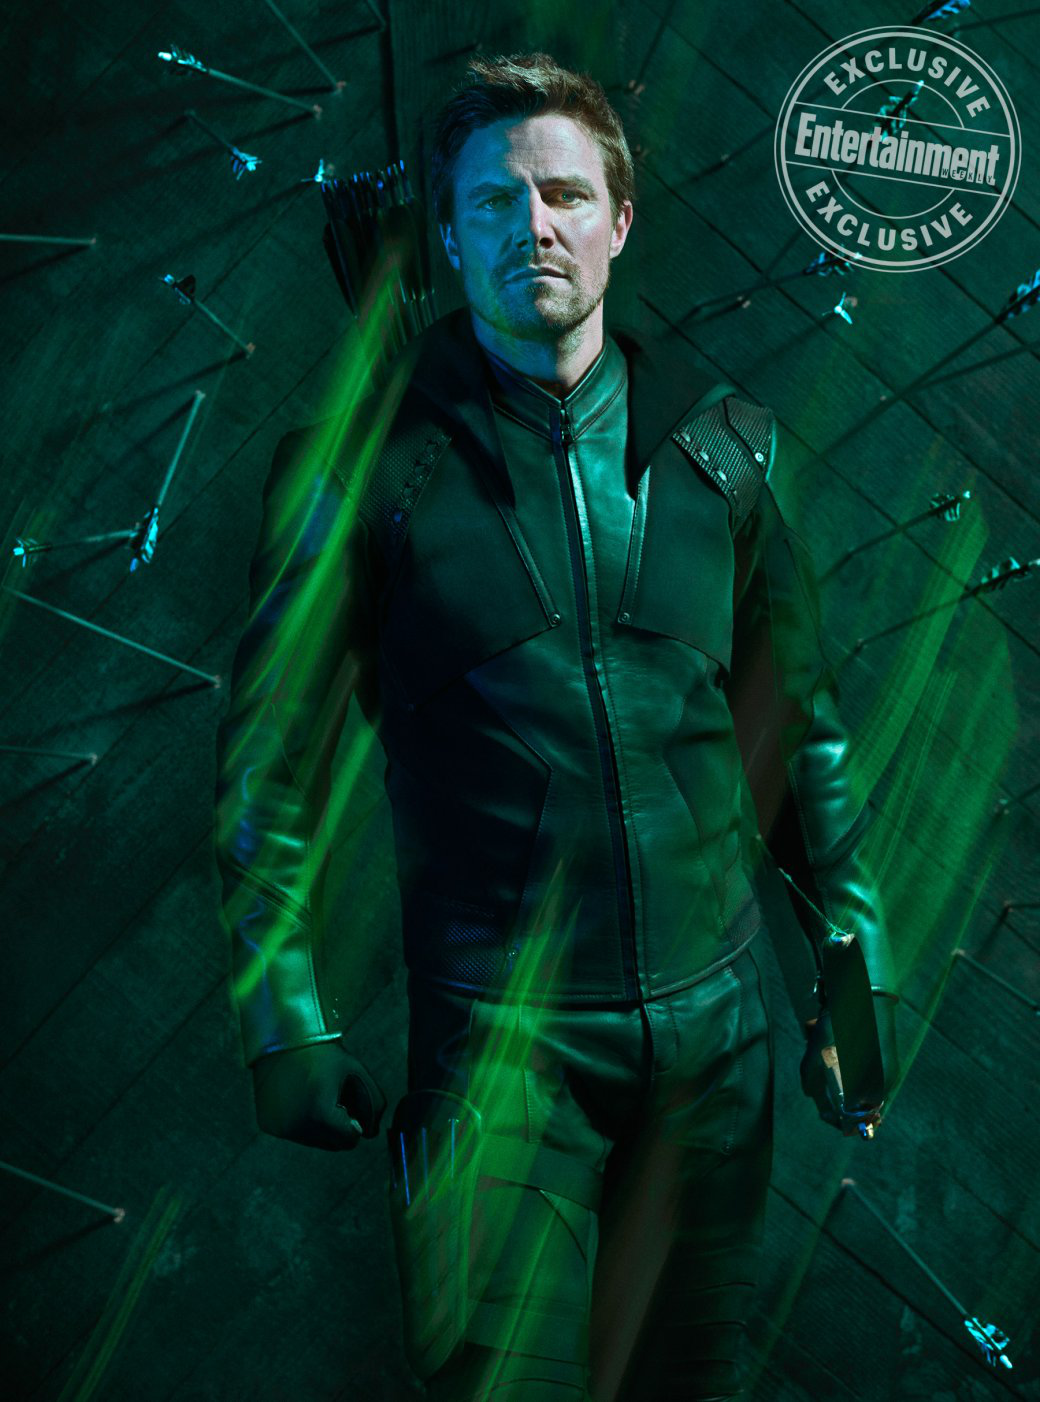 Arrow season 8 - Entertainment Weekly Oliver Queen promo 1.png